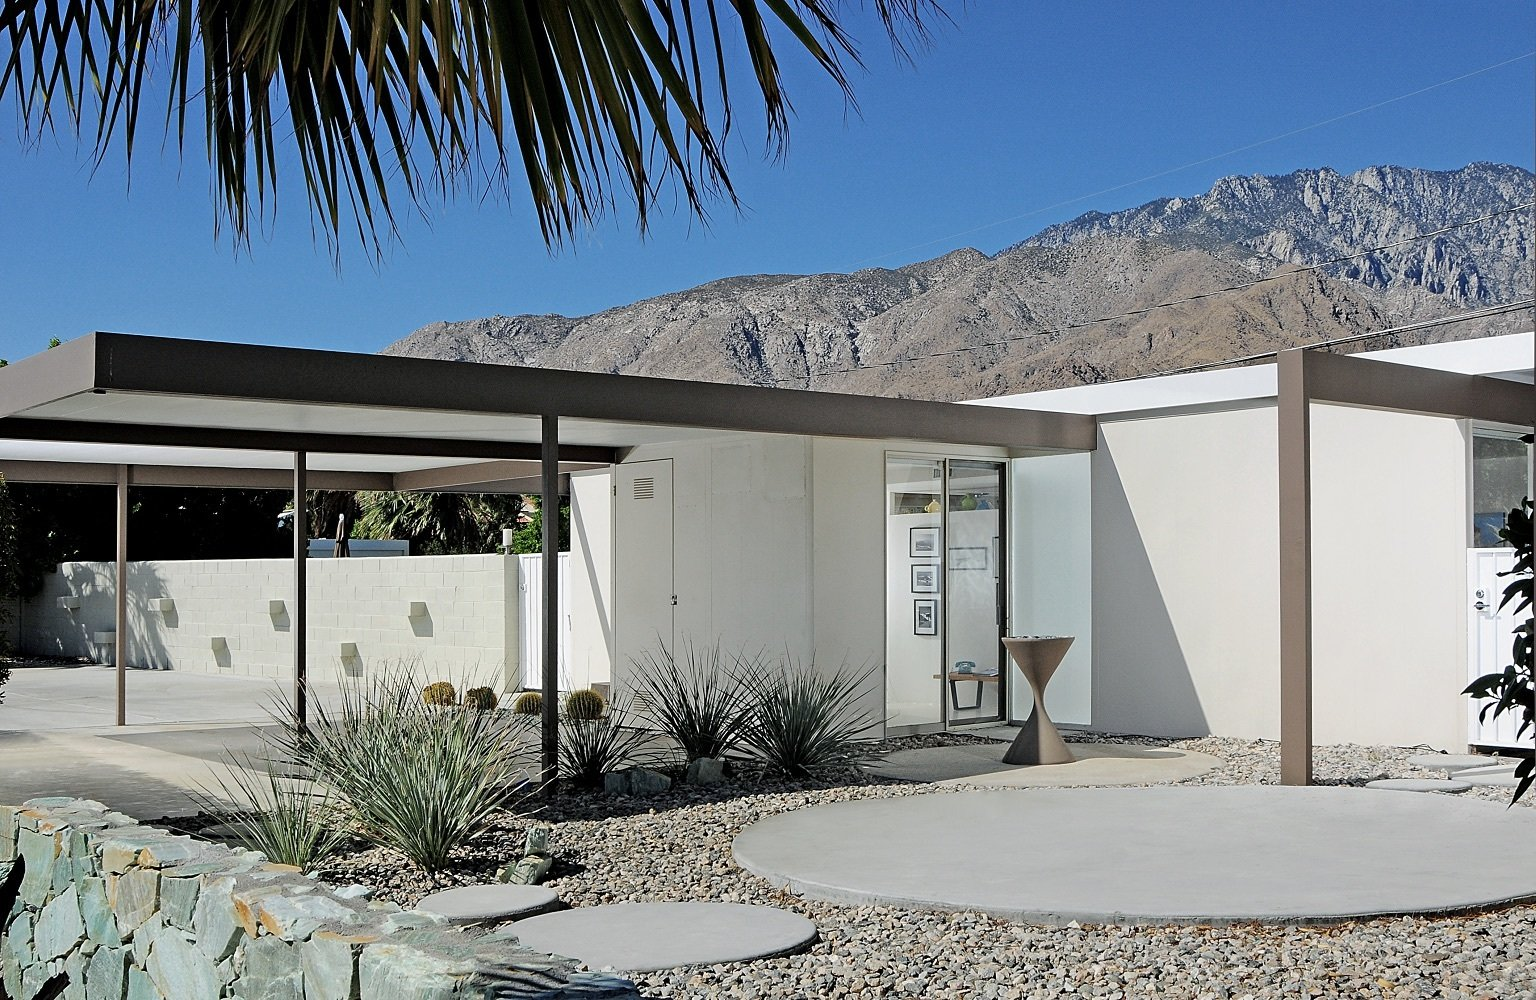 The two-bedroom, two-bathroom house has a pool and an open air carport on a fourth-acre lot.